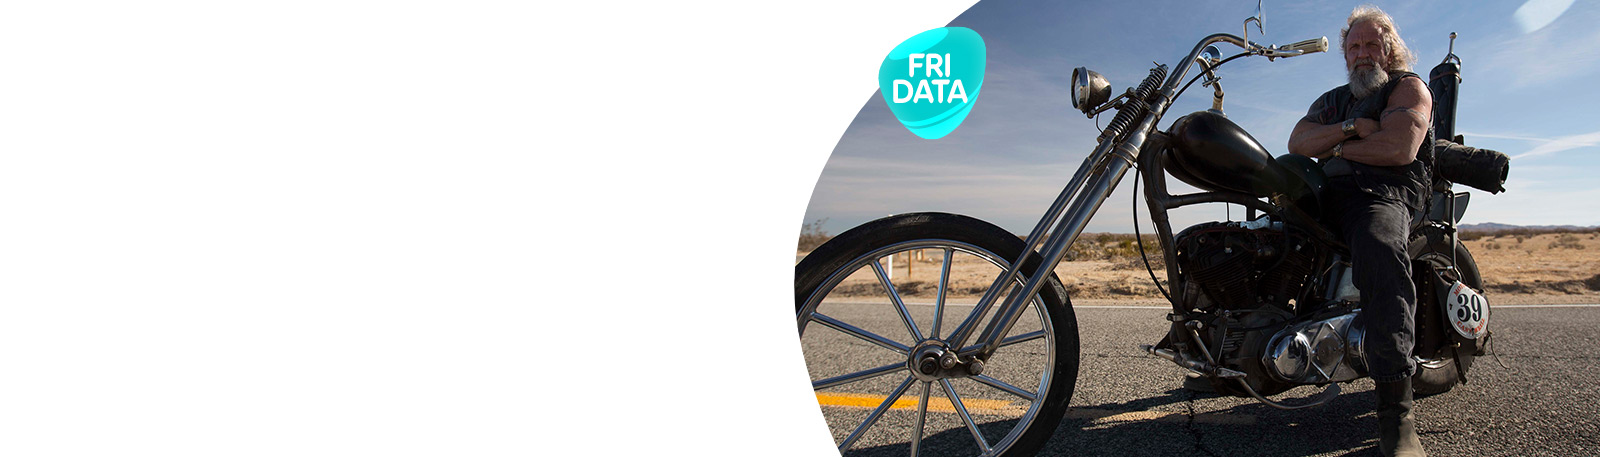 Mobilabonnementer med fri data